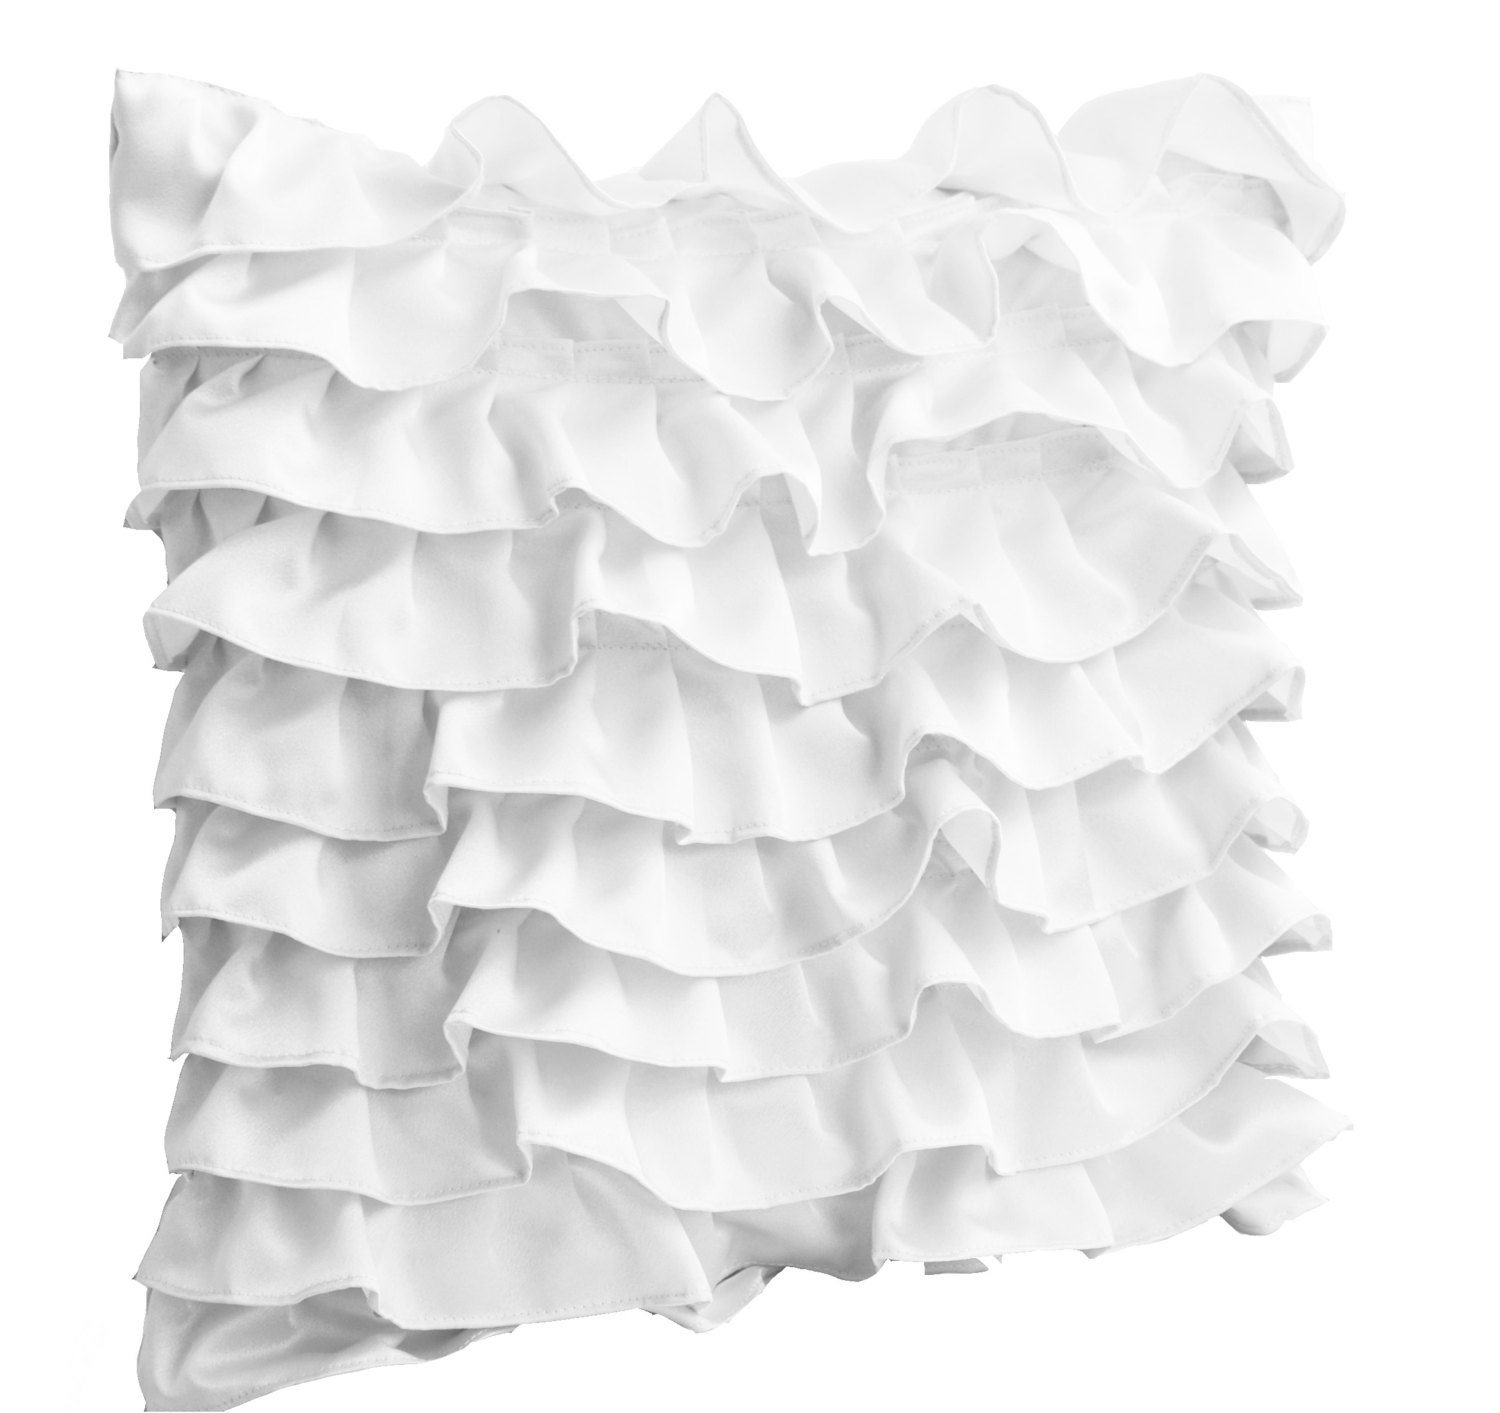 shredded certified latex bed organic pillow cotton puretree pillows natural